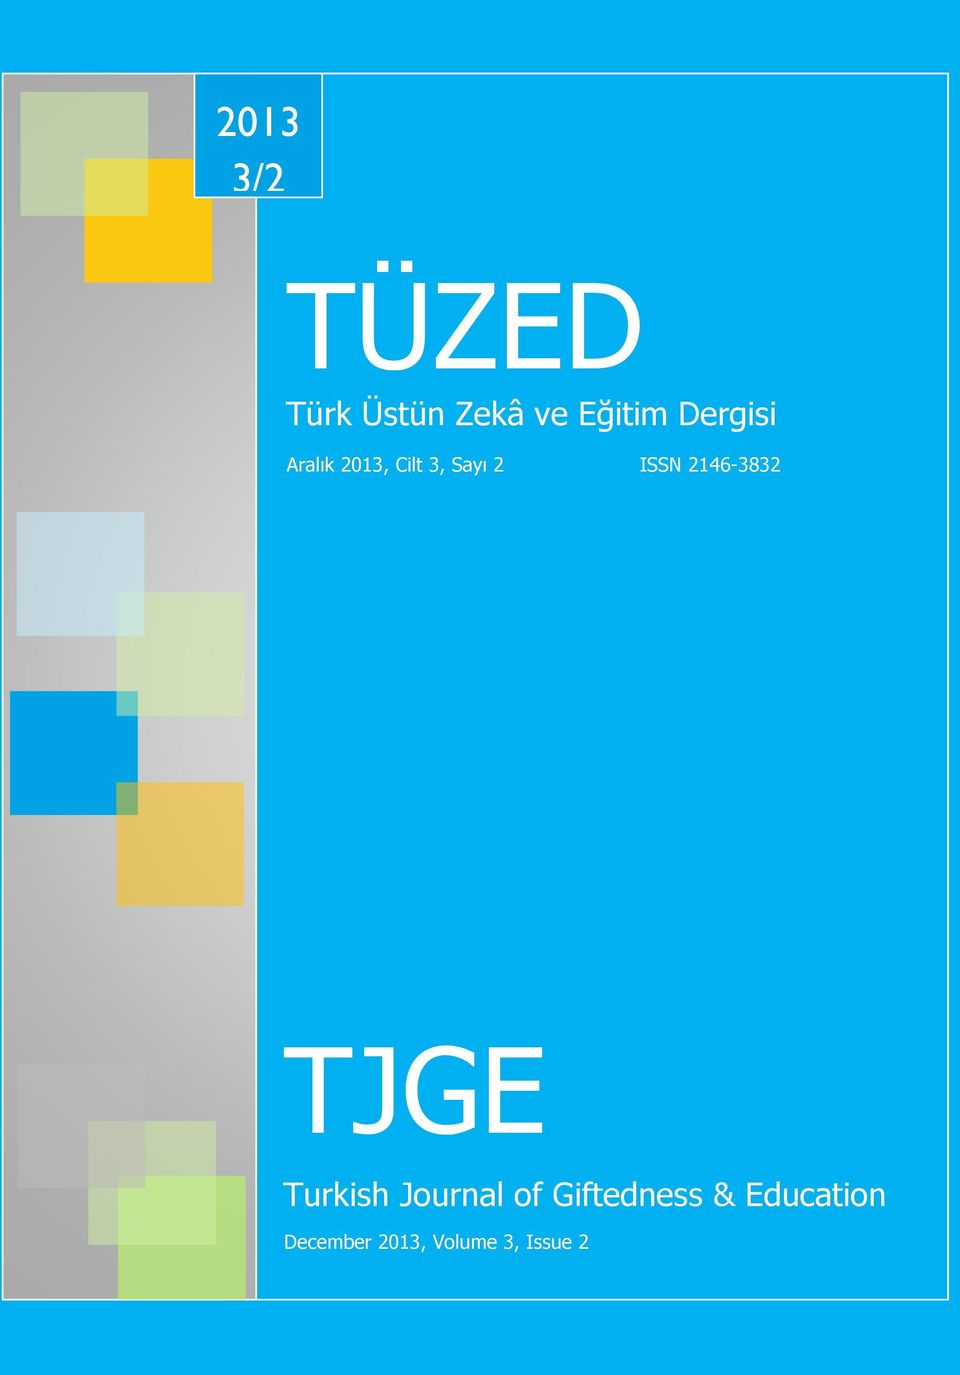 2146-3832 TJGE Turkish Journal of